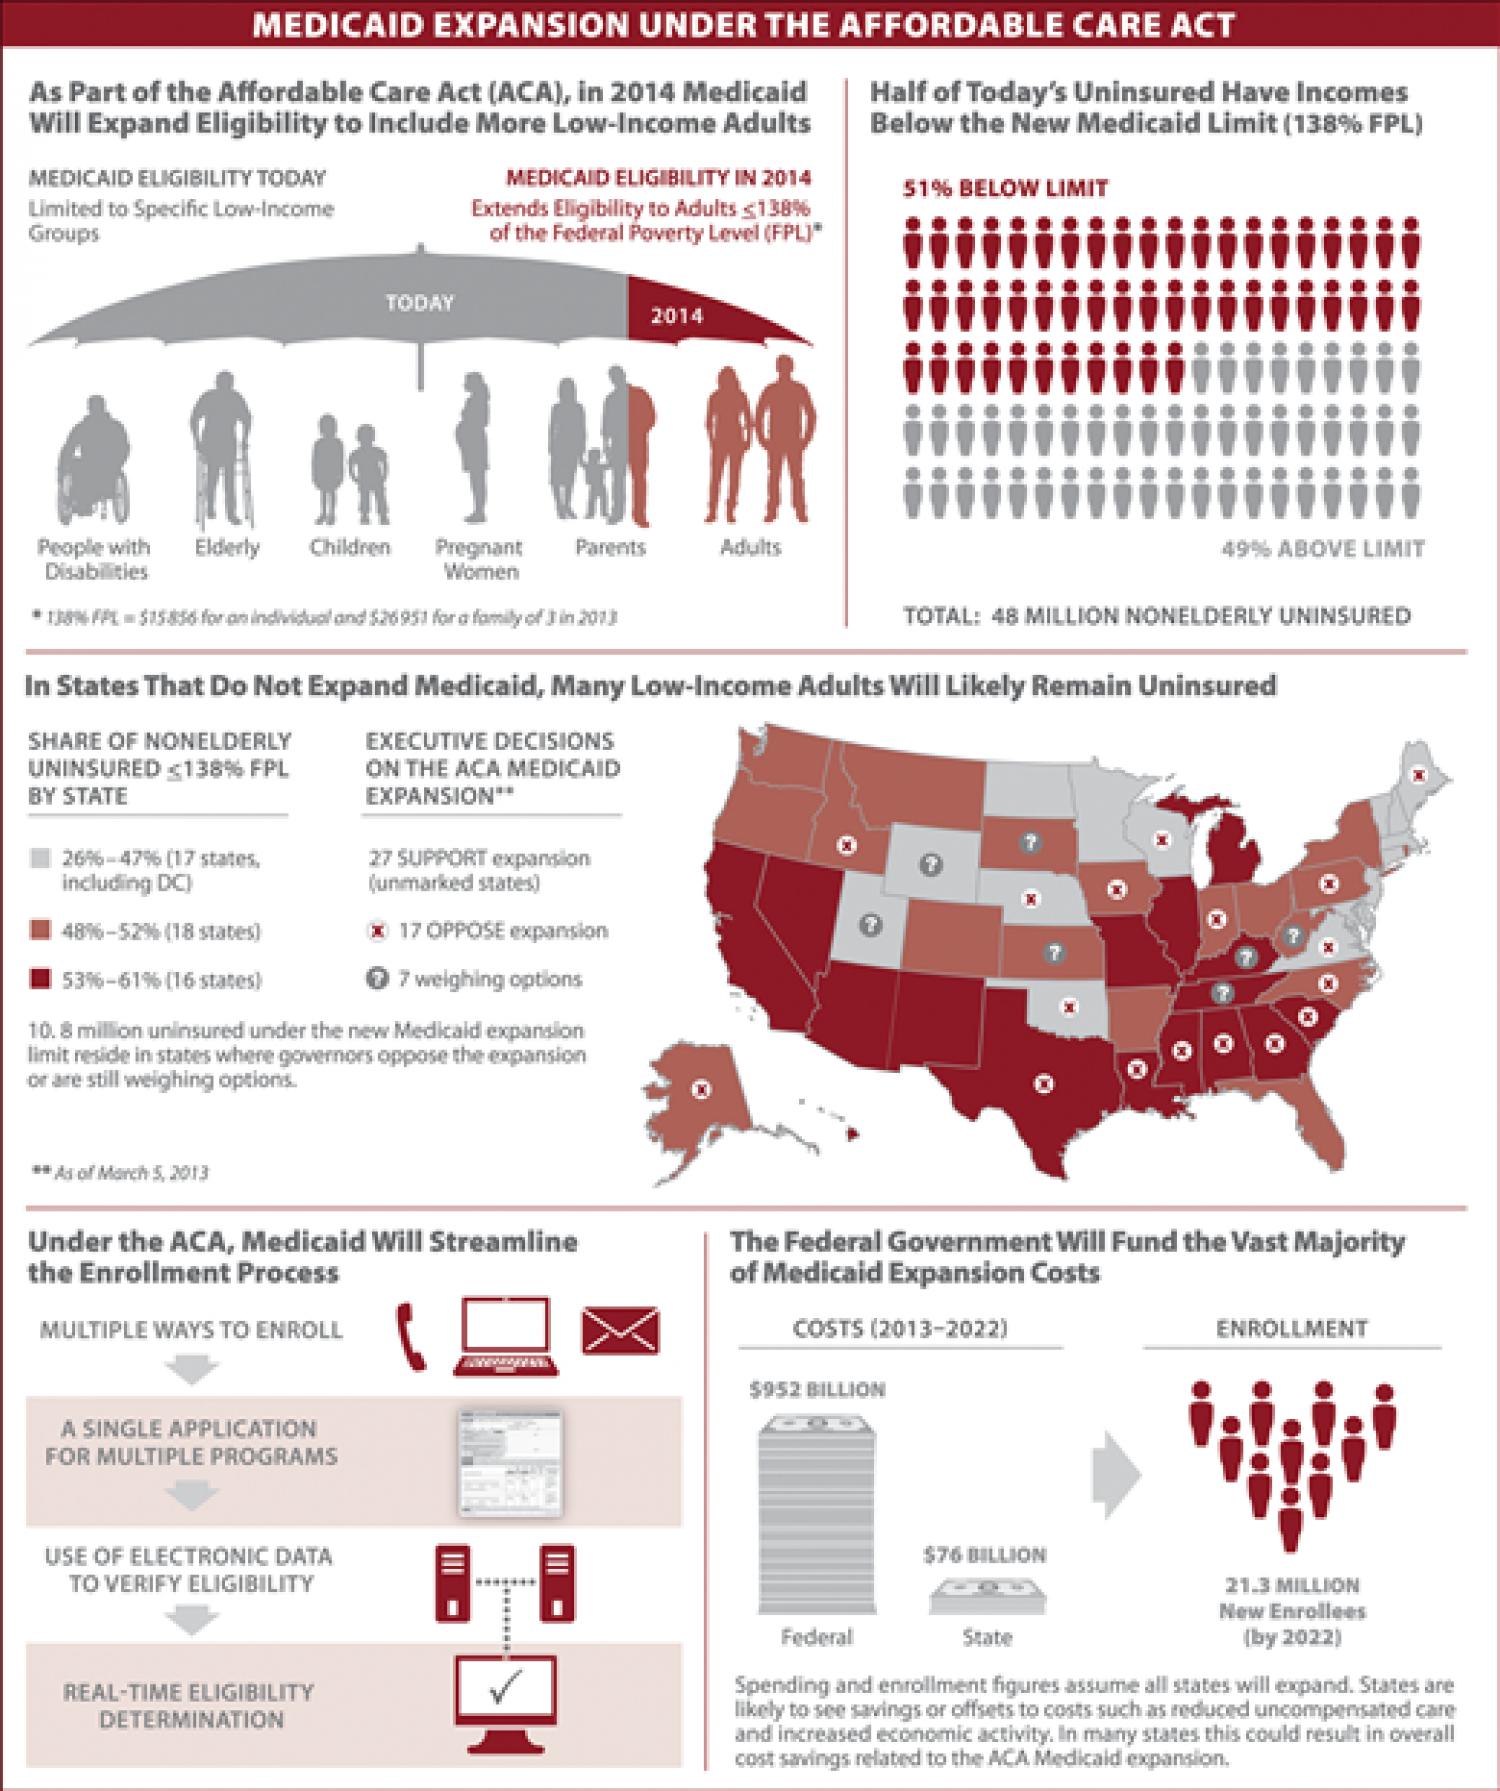 Medicaid Expansion Under the Affordable Care Act Infographic